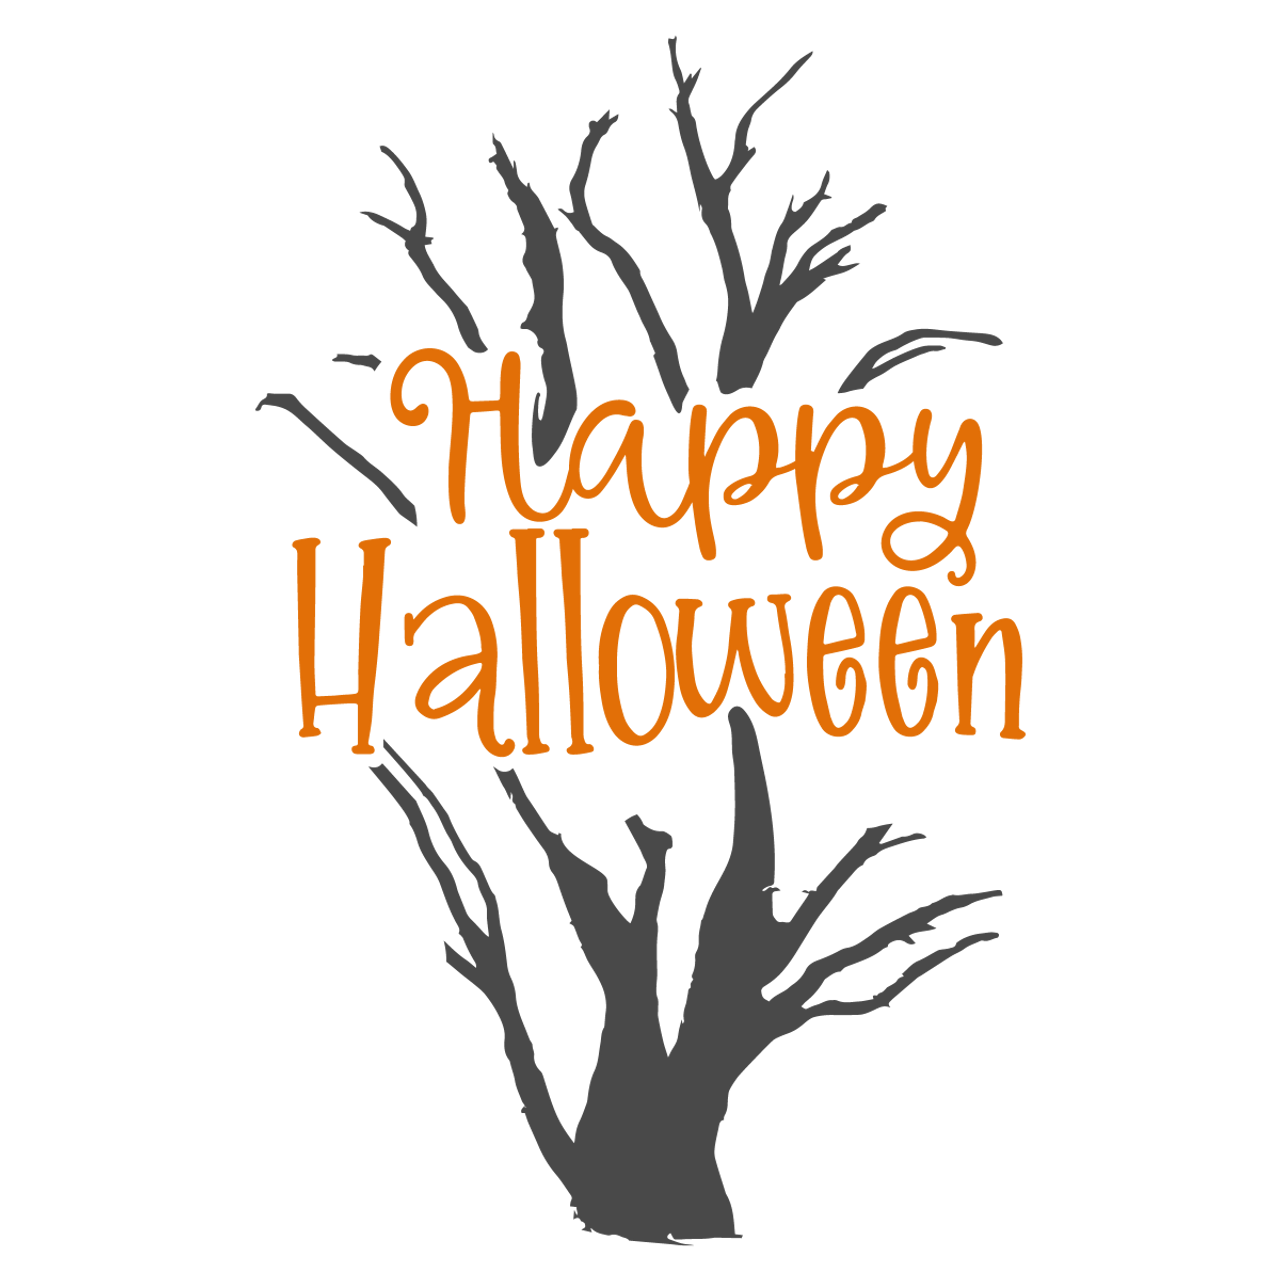 Happy Halloween Svg V3 Svg Eps Png Dxf Cut Files For Cricut And Silhouette Cameo By Savanasdesign